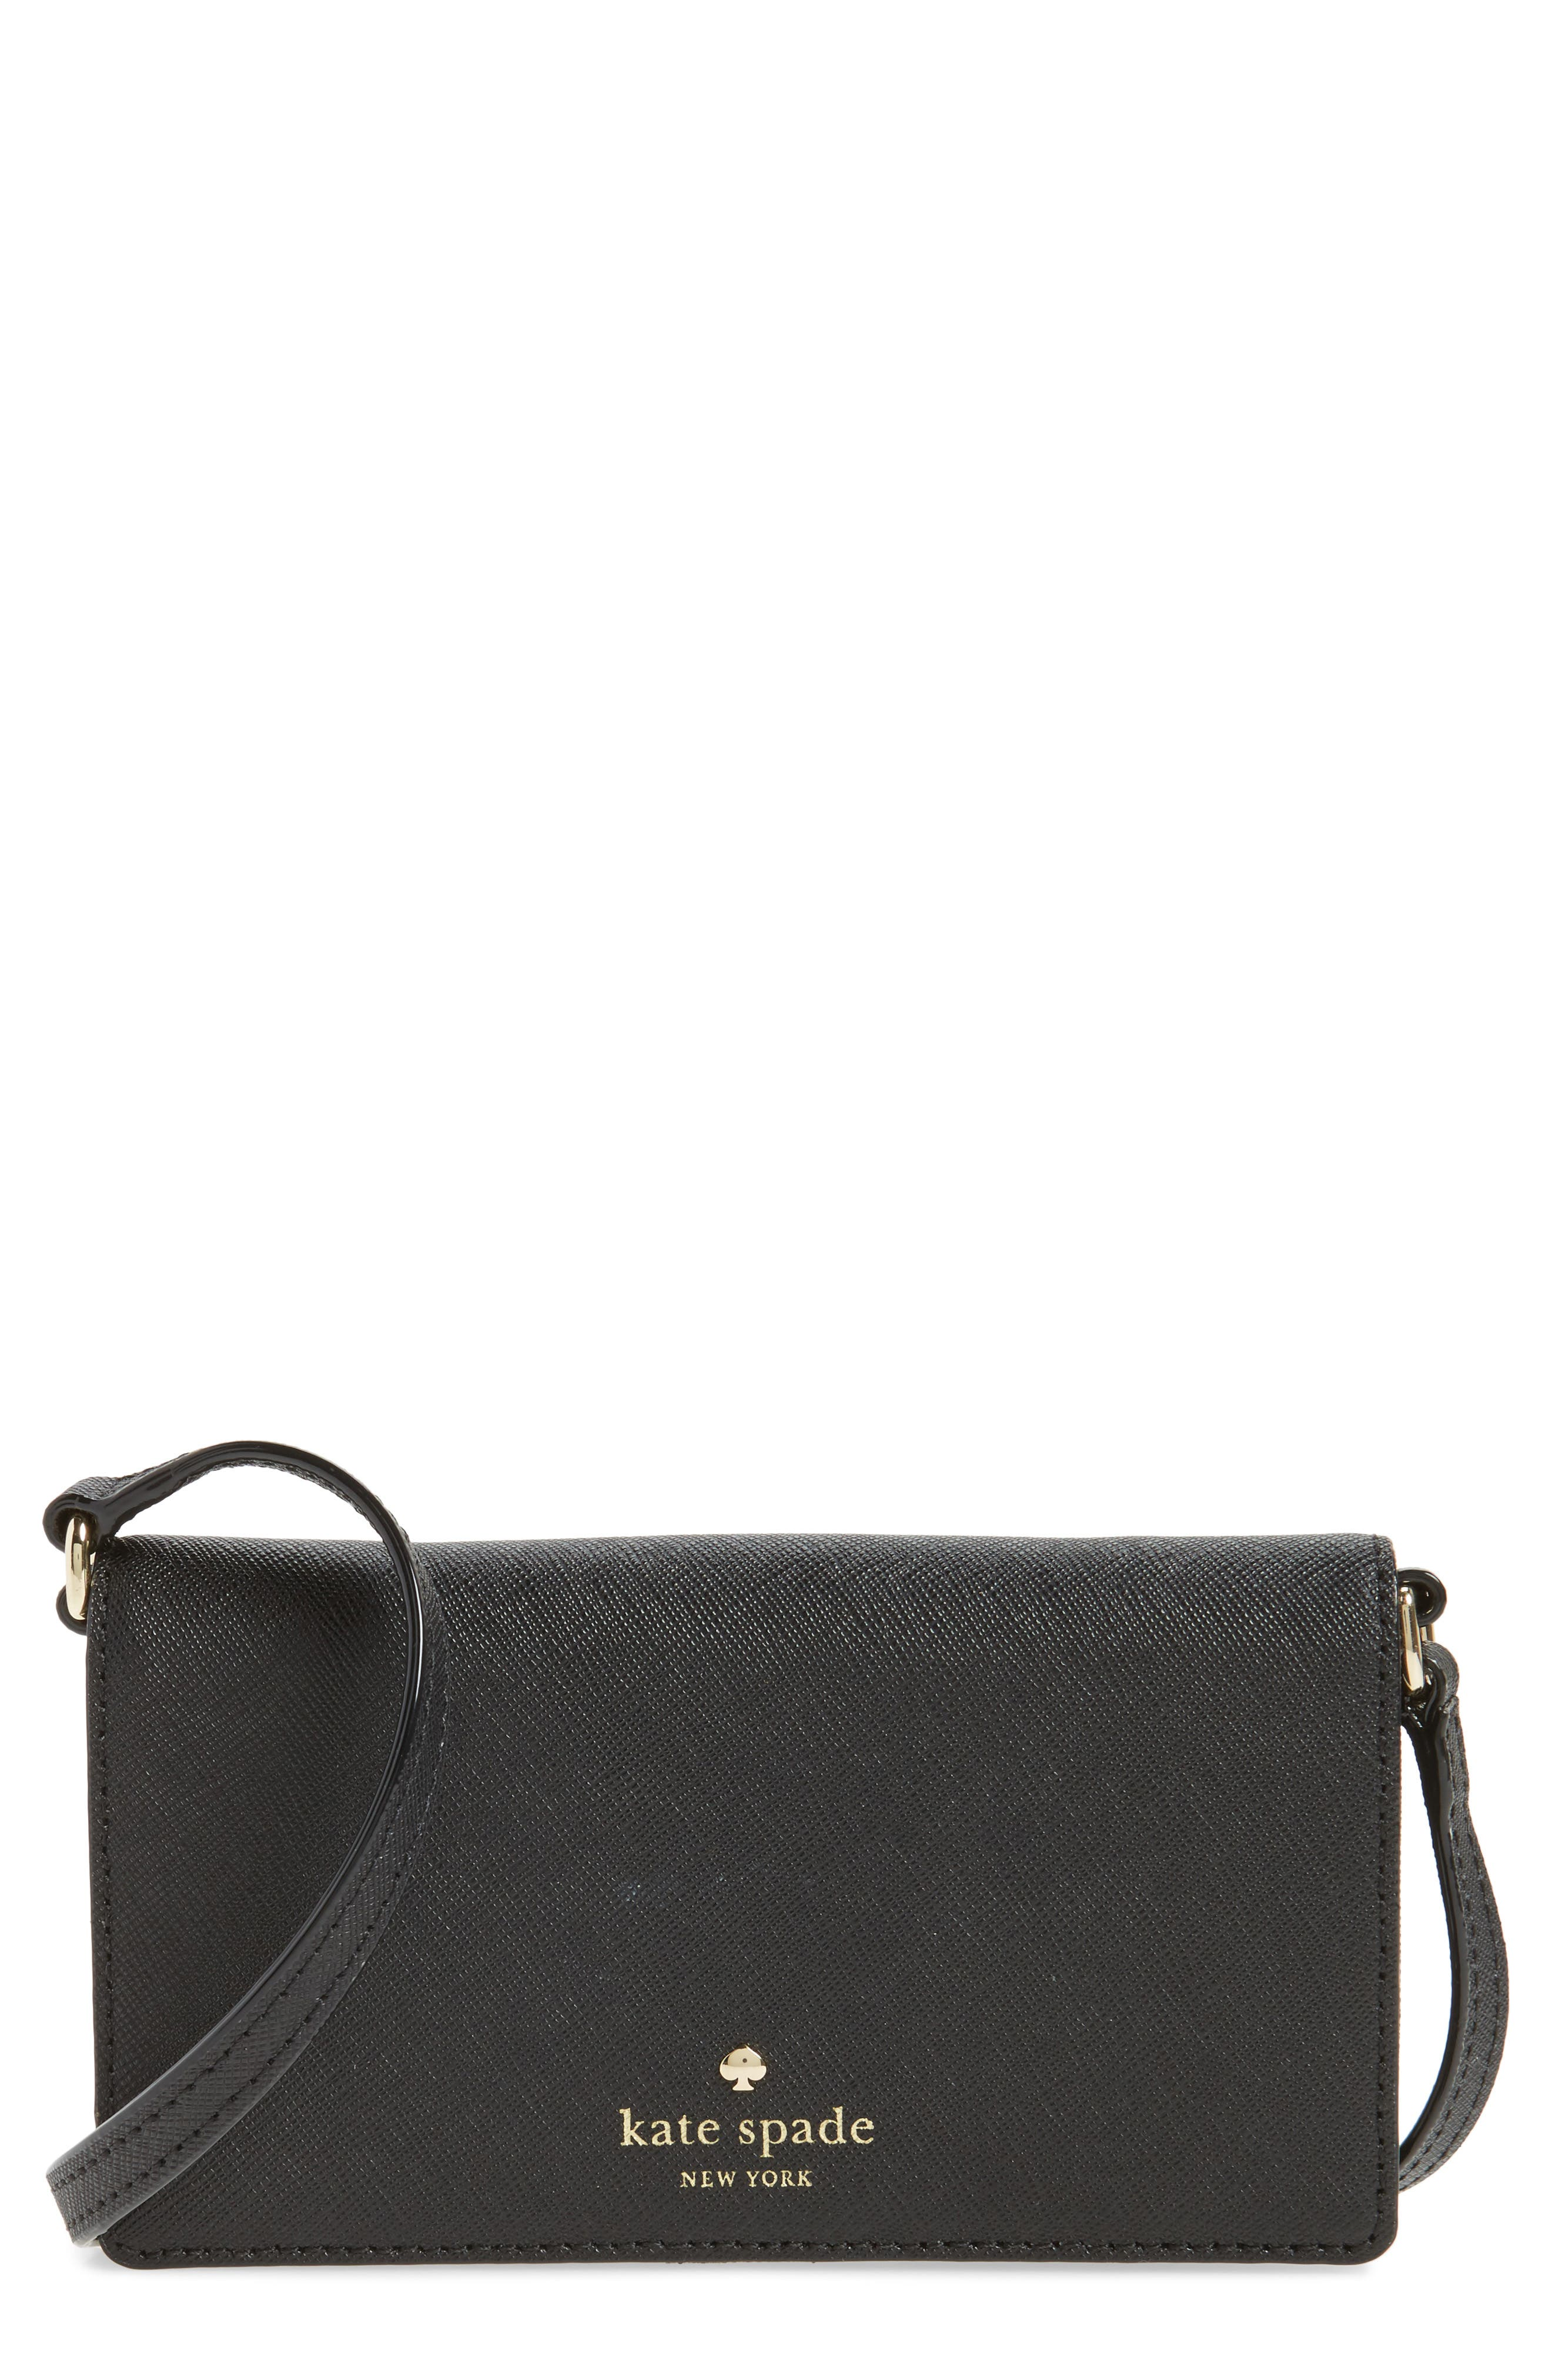 kate spade new york iPhone 7 leather crossbody wallet